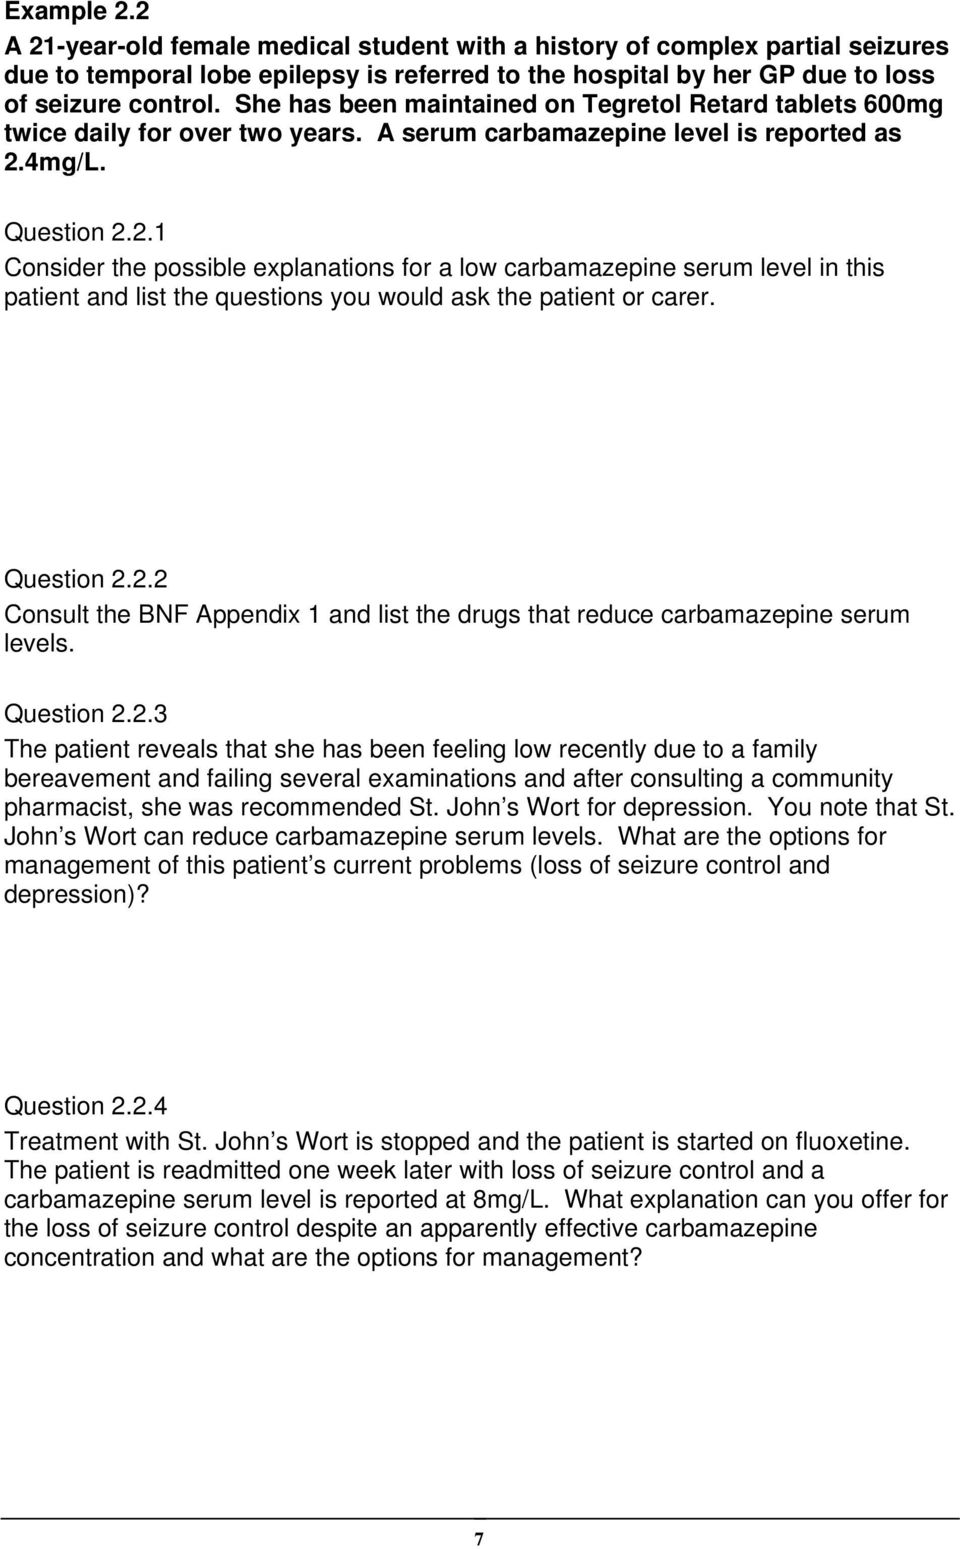 4mg/L. Question 2.2.1 Consider the possible explanations for a low carbamazepine serum level in this patient and list the questions you would ask the patient or carer. Question 2.2.2 Consult the BNF Appendix 1 and list the drugs that reduce carbamazepine serum levels.